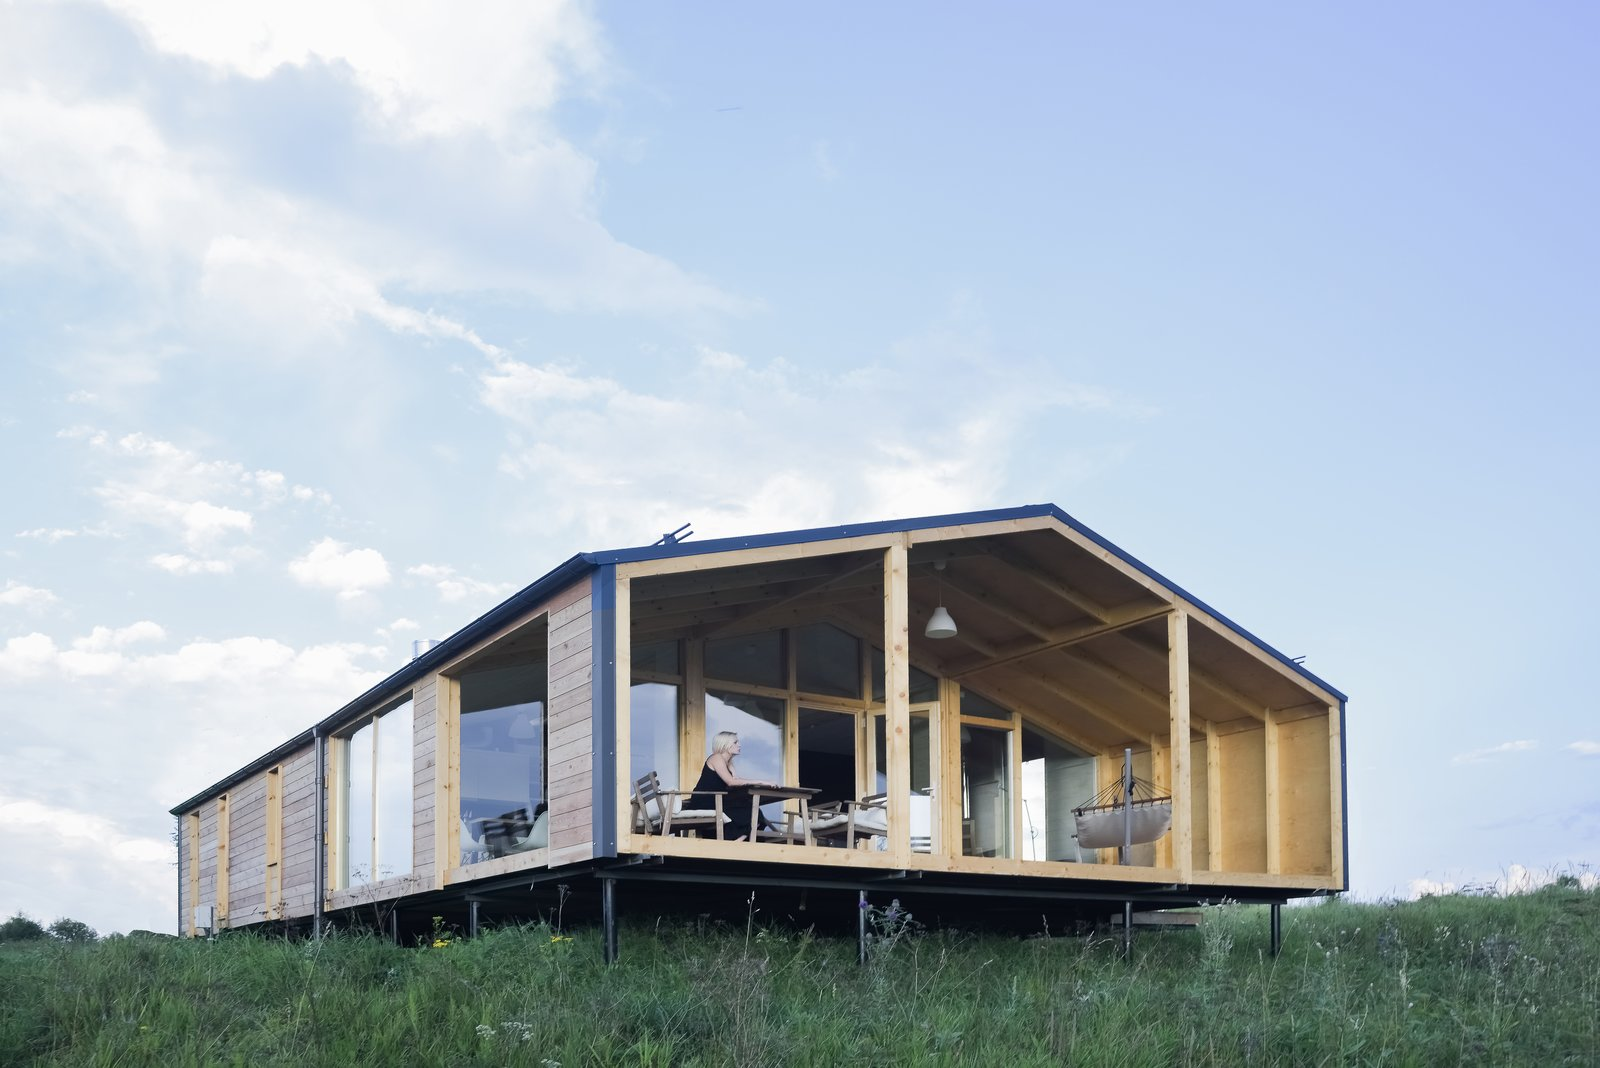 Articles about prefab home can be built day generates twice energy it uses on Dwell.com